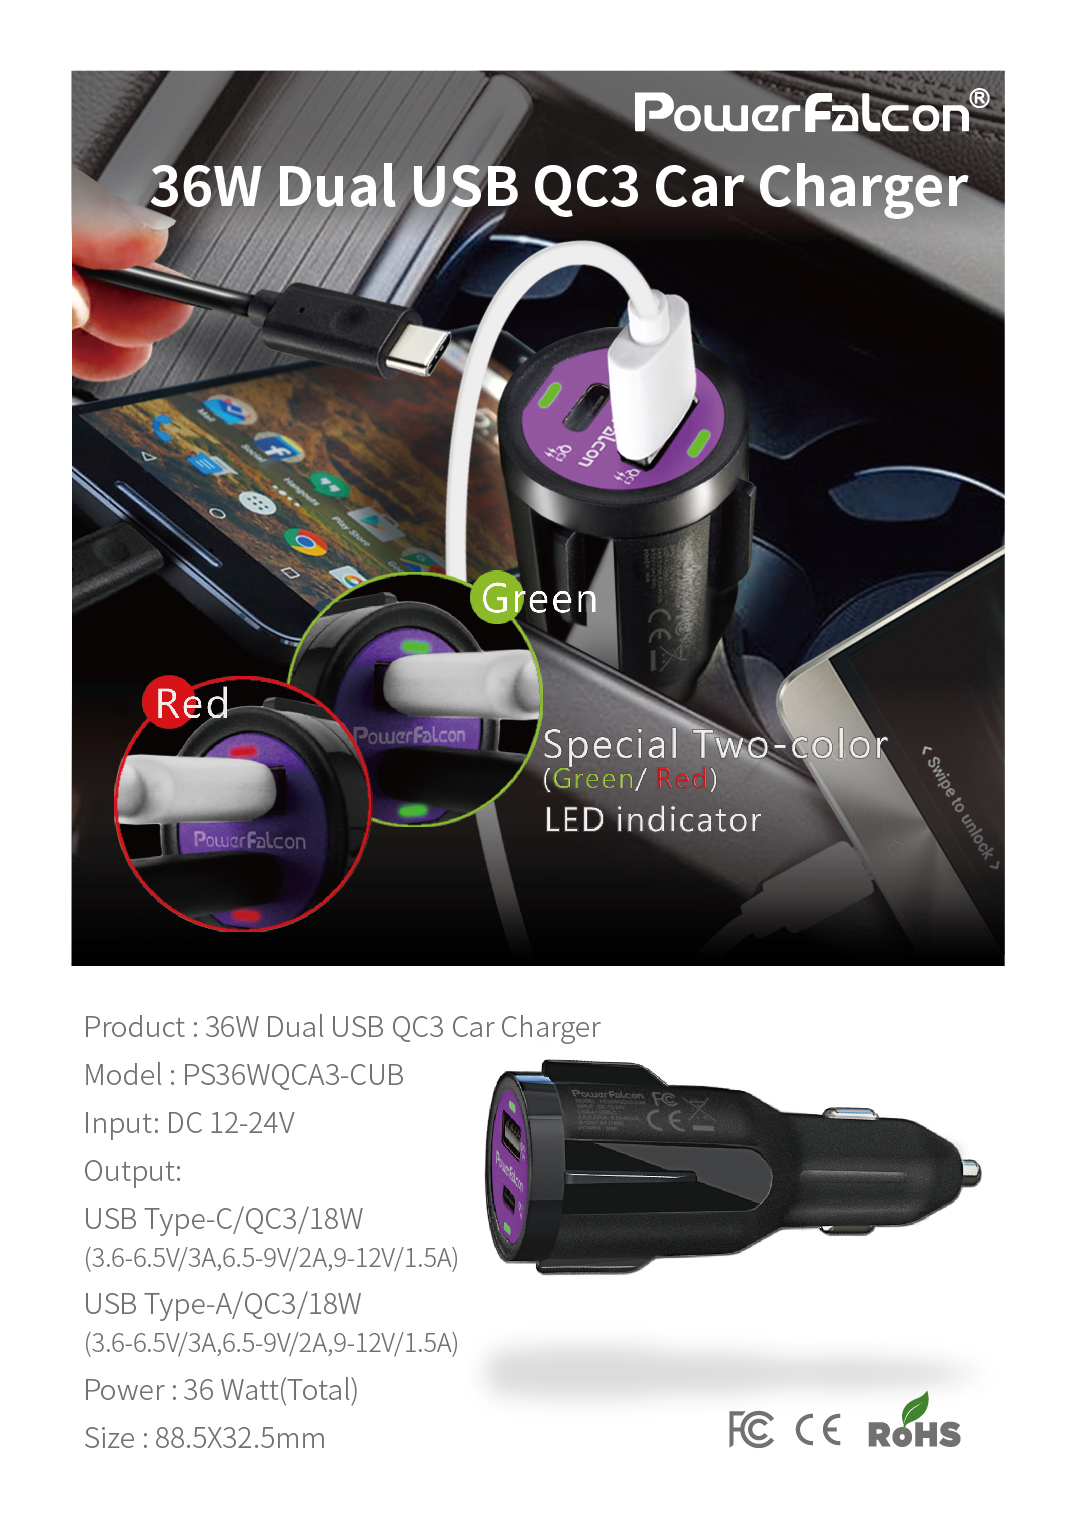 Powerfalcon 36W Dual QC3 (USB C+A) Car Charger